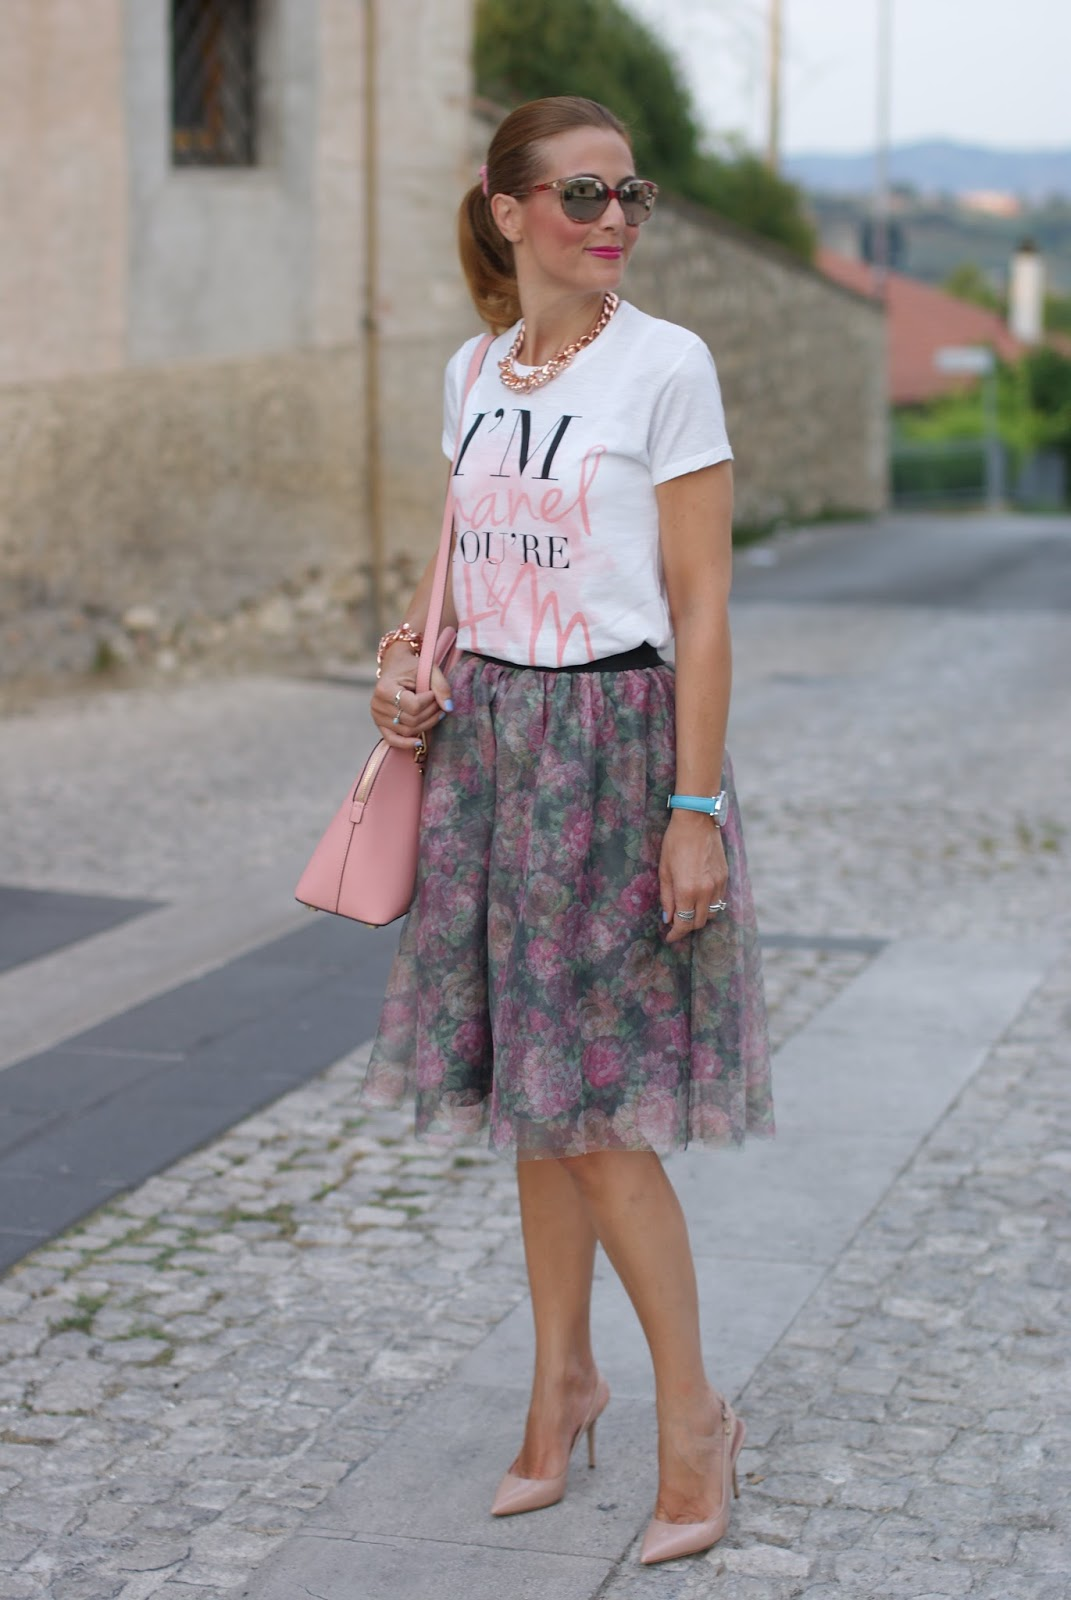 Walktrendy floral tulle skirt, Gucci sunglasses and pink accessories on Fashion and Cookies fashion blog